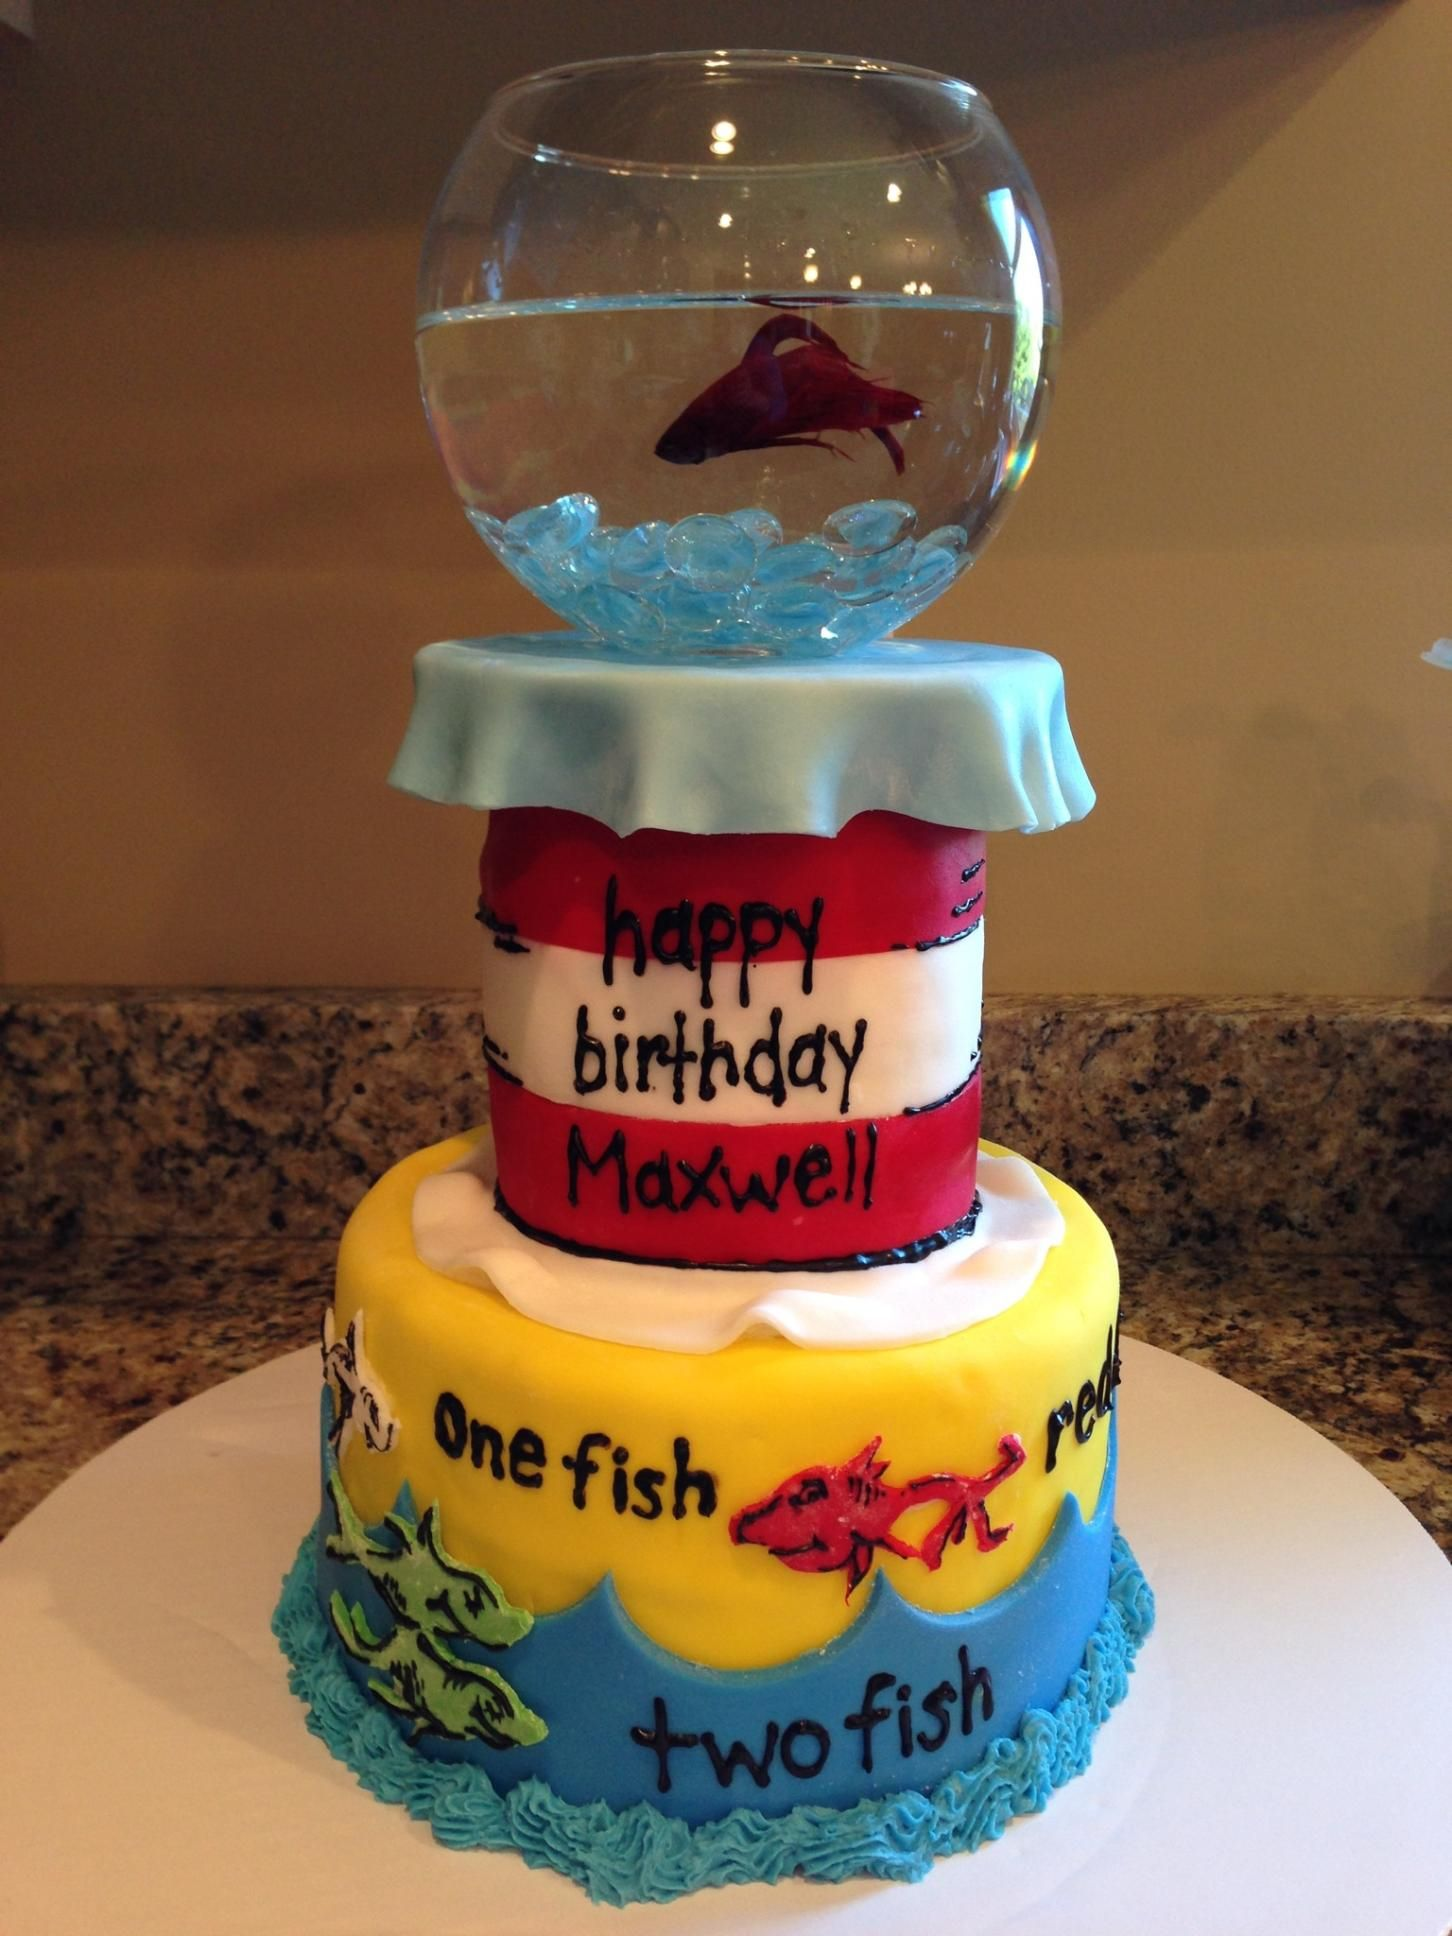 First birthday cake one fish two fish red fish blue fish